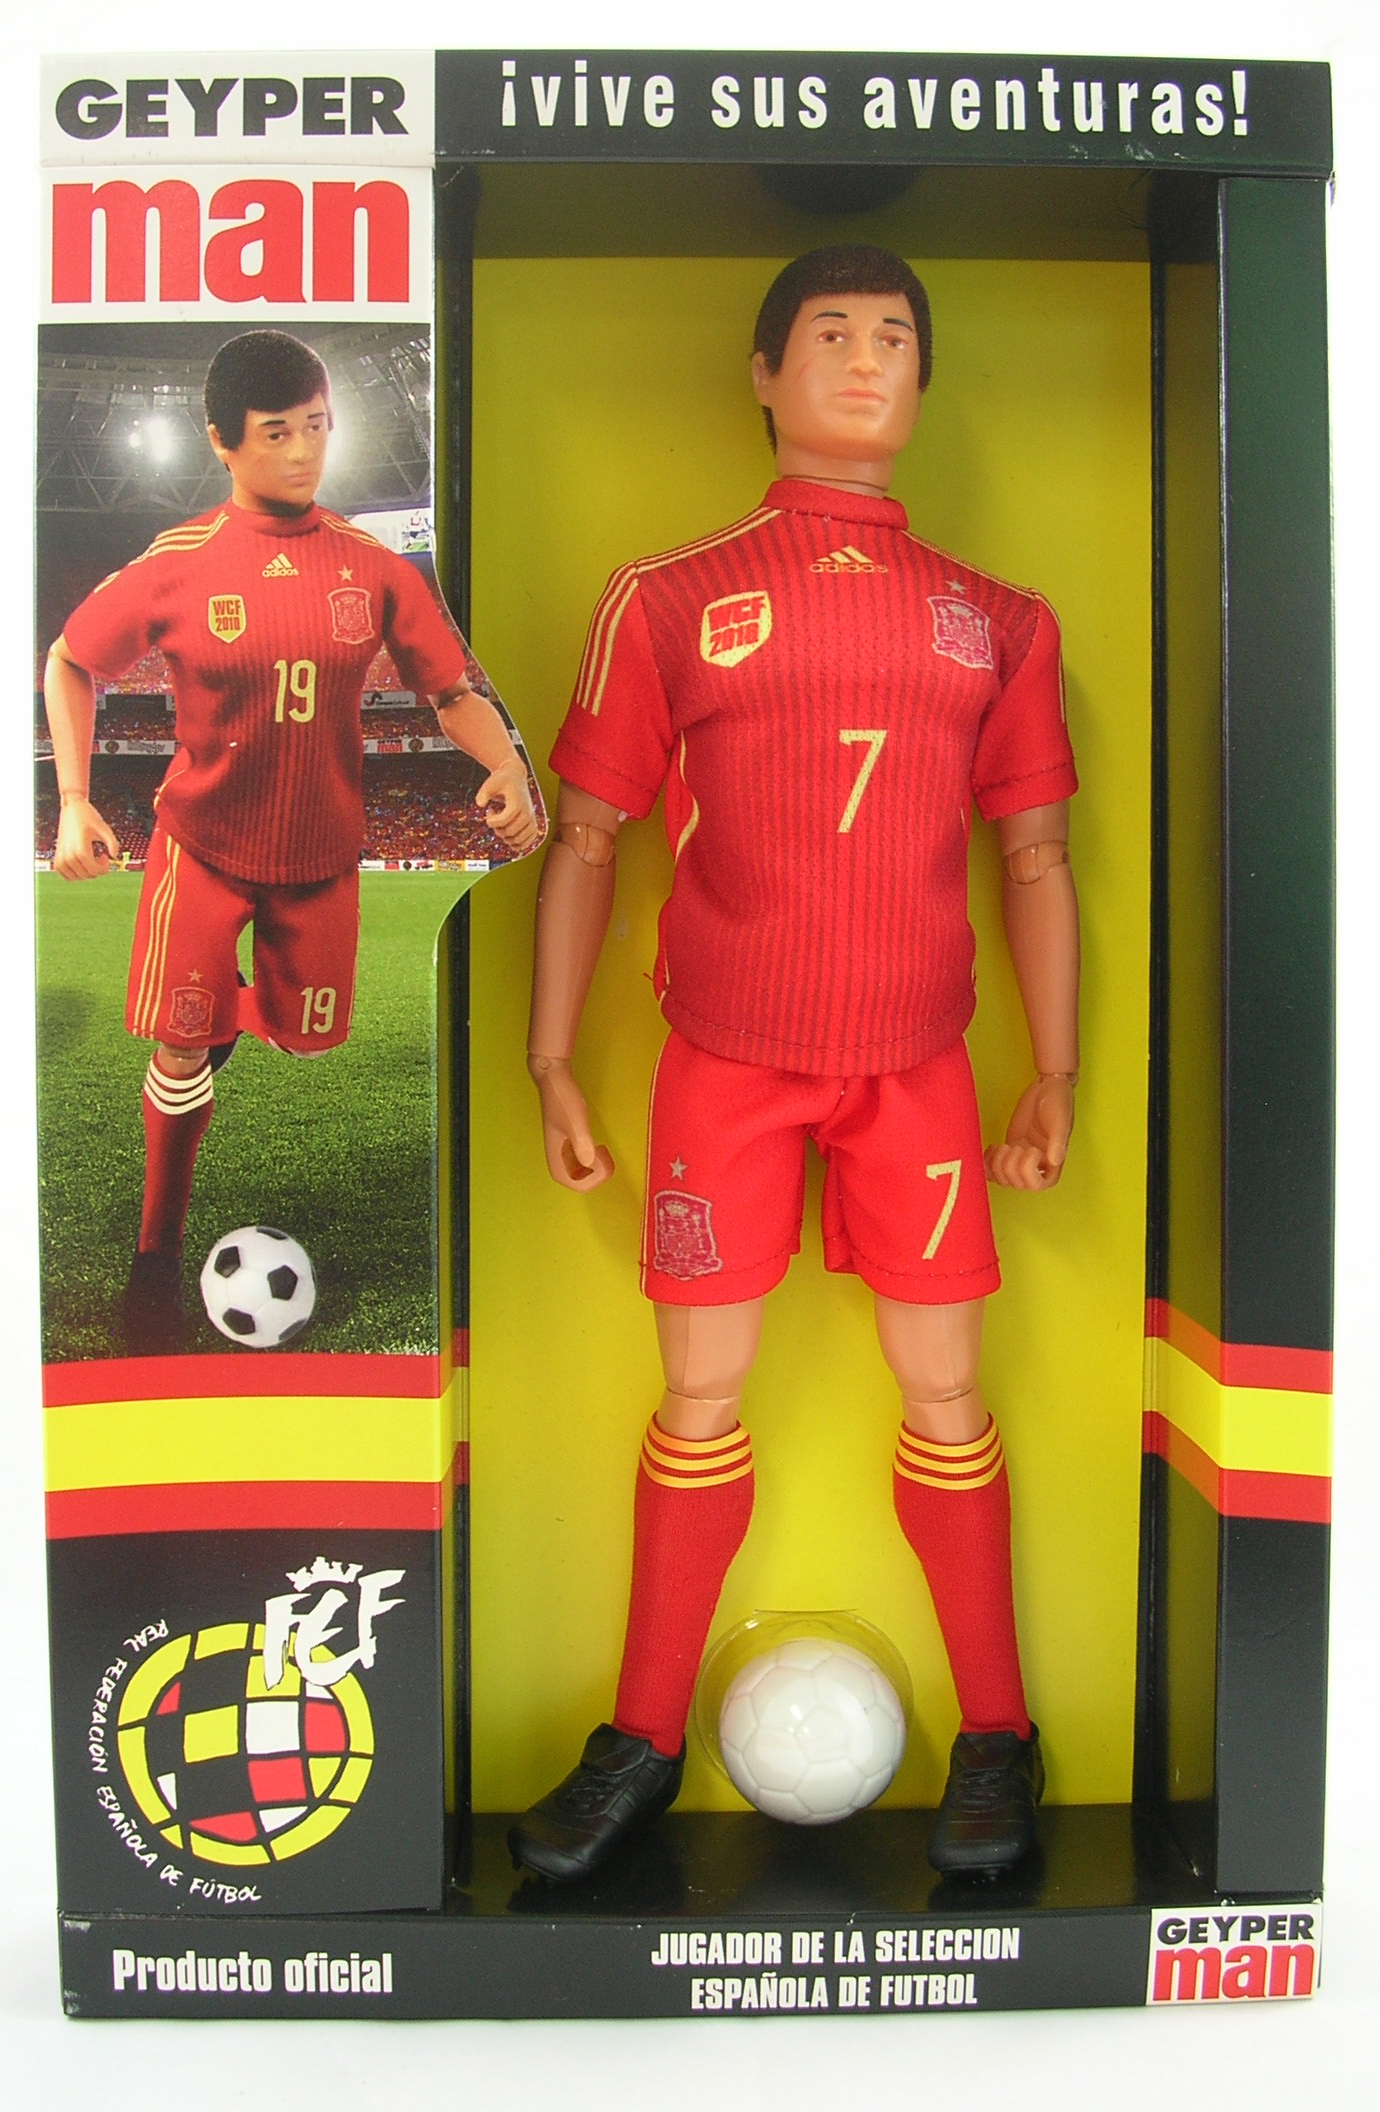 Spanish Soccer Team Player (All Red Uniform)